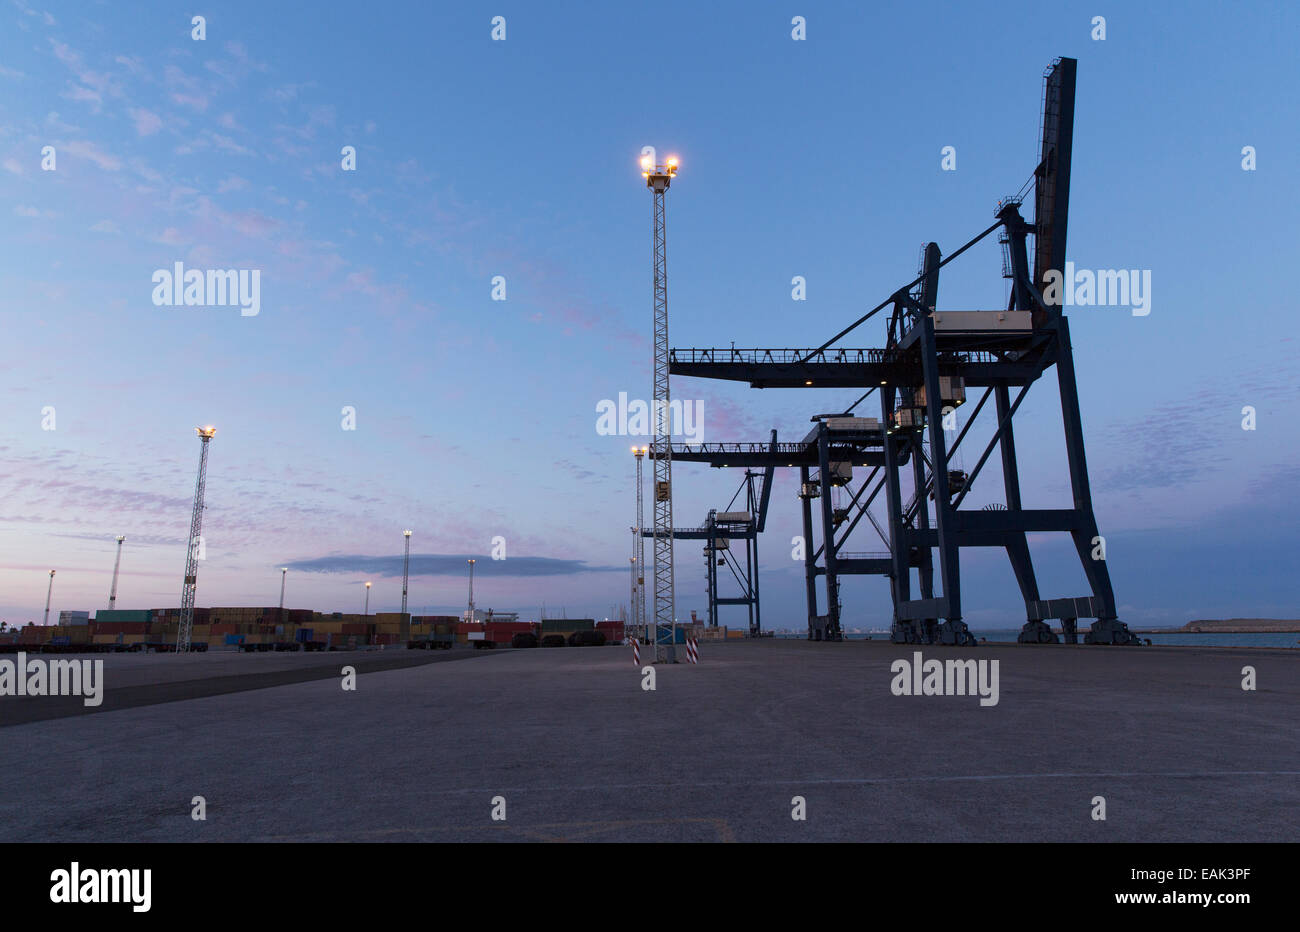 Cargo cranes at night - Stock Image